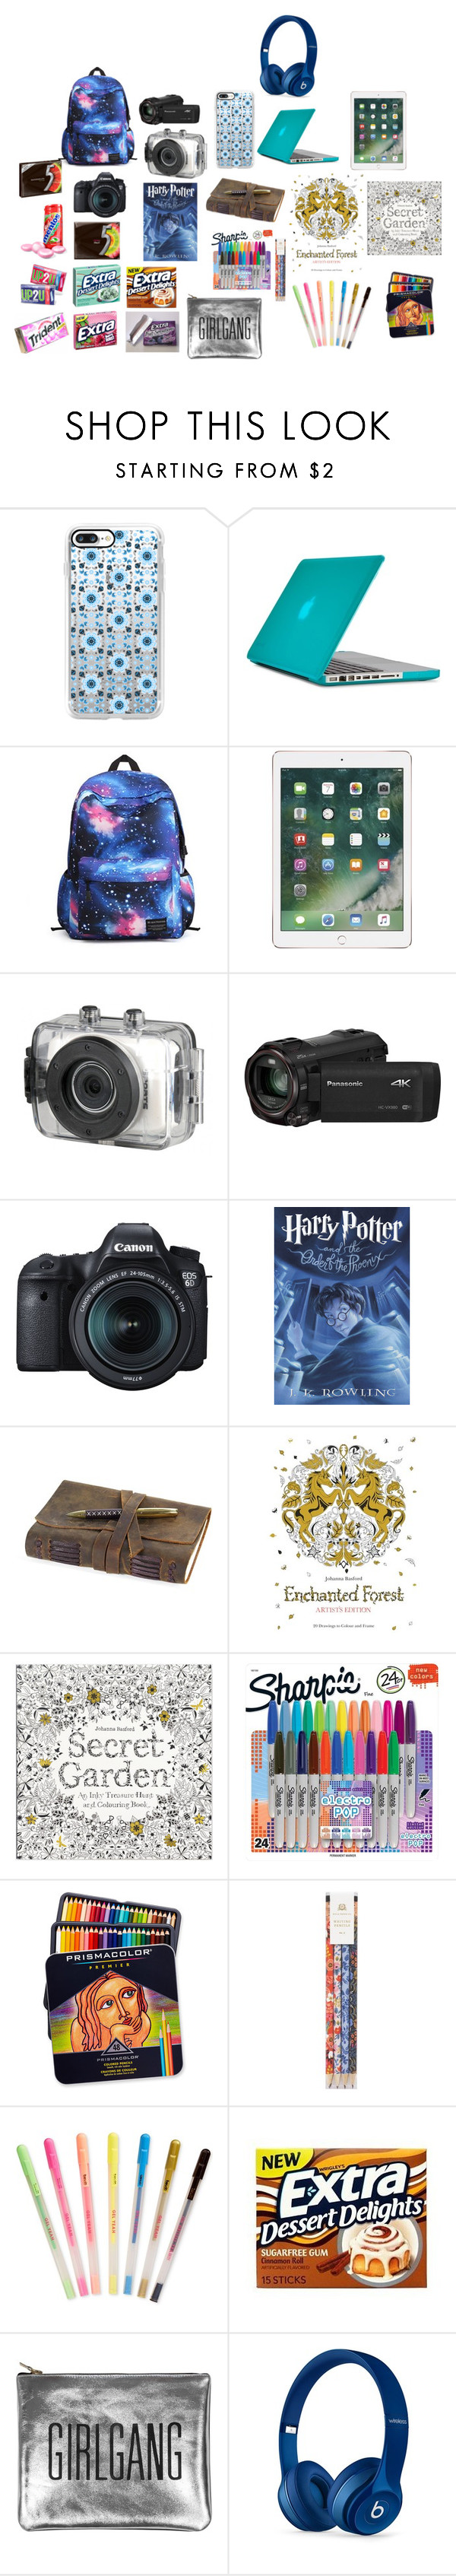 """""""Carry on bag"""" by jaynahickmon on Polyvore featuring Casetify, Speck, Vivitar, Panasonic, Eos, Chronicle Books, Sharpie, Rifle Paper Co, ban.do and CO"""